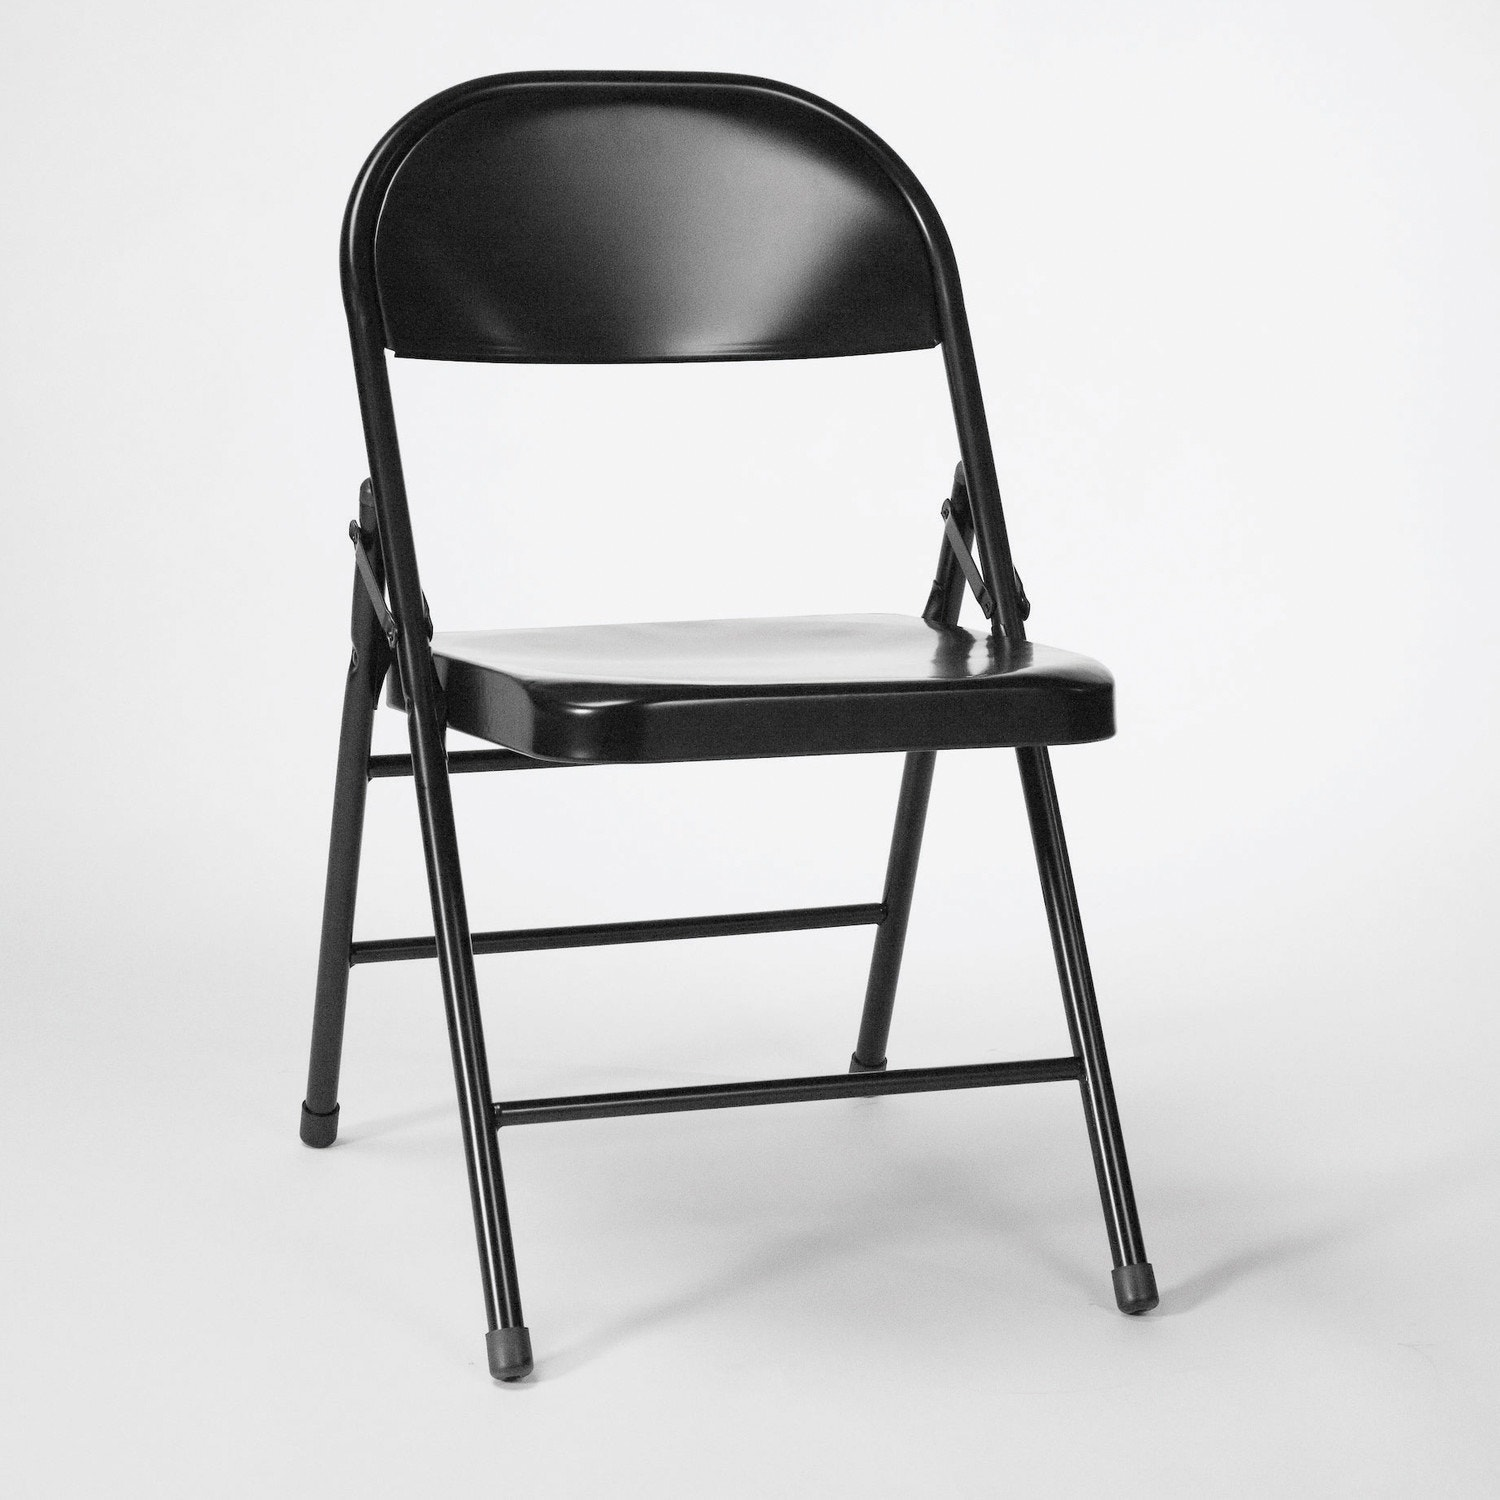 How to buy wholesale folding chairs from the factory?